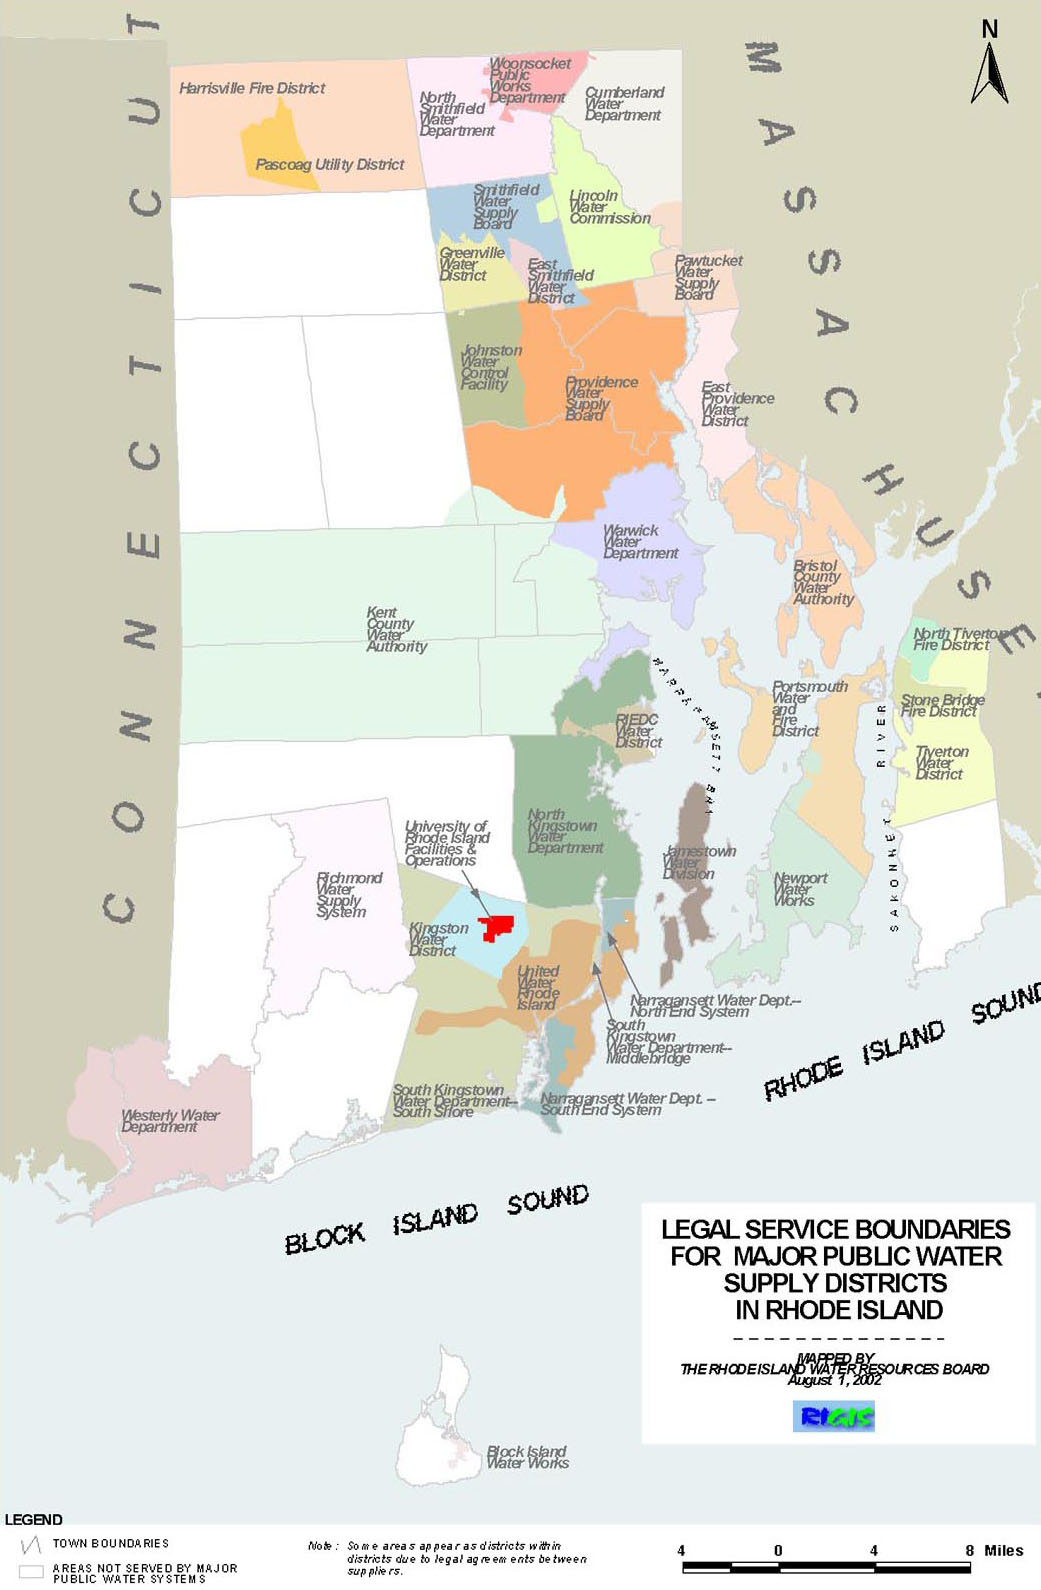 Water Suppliers - RI Water Resources Board on